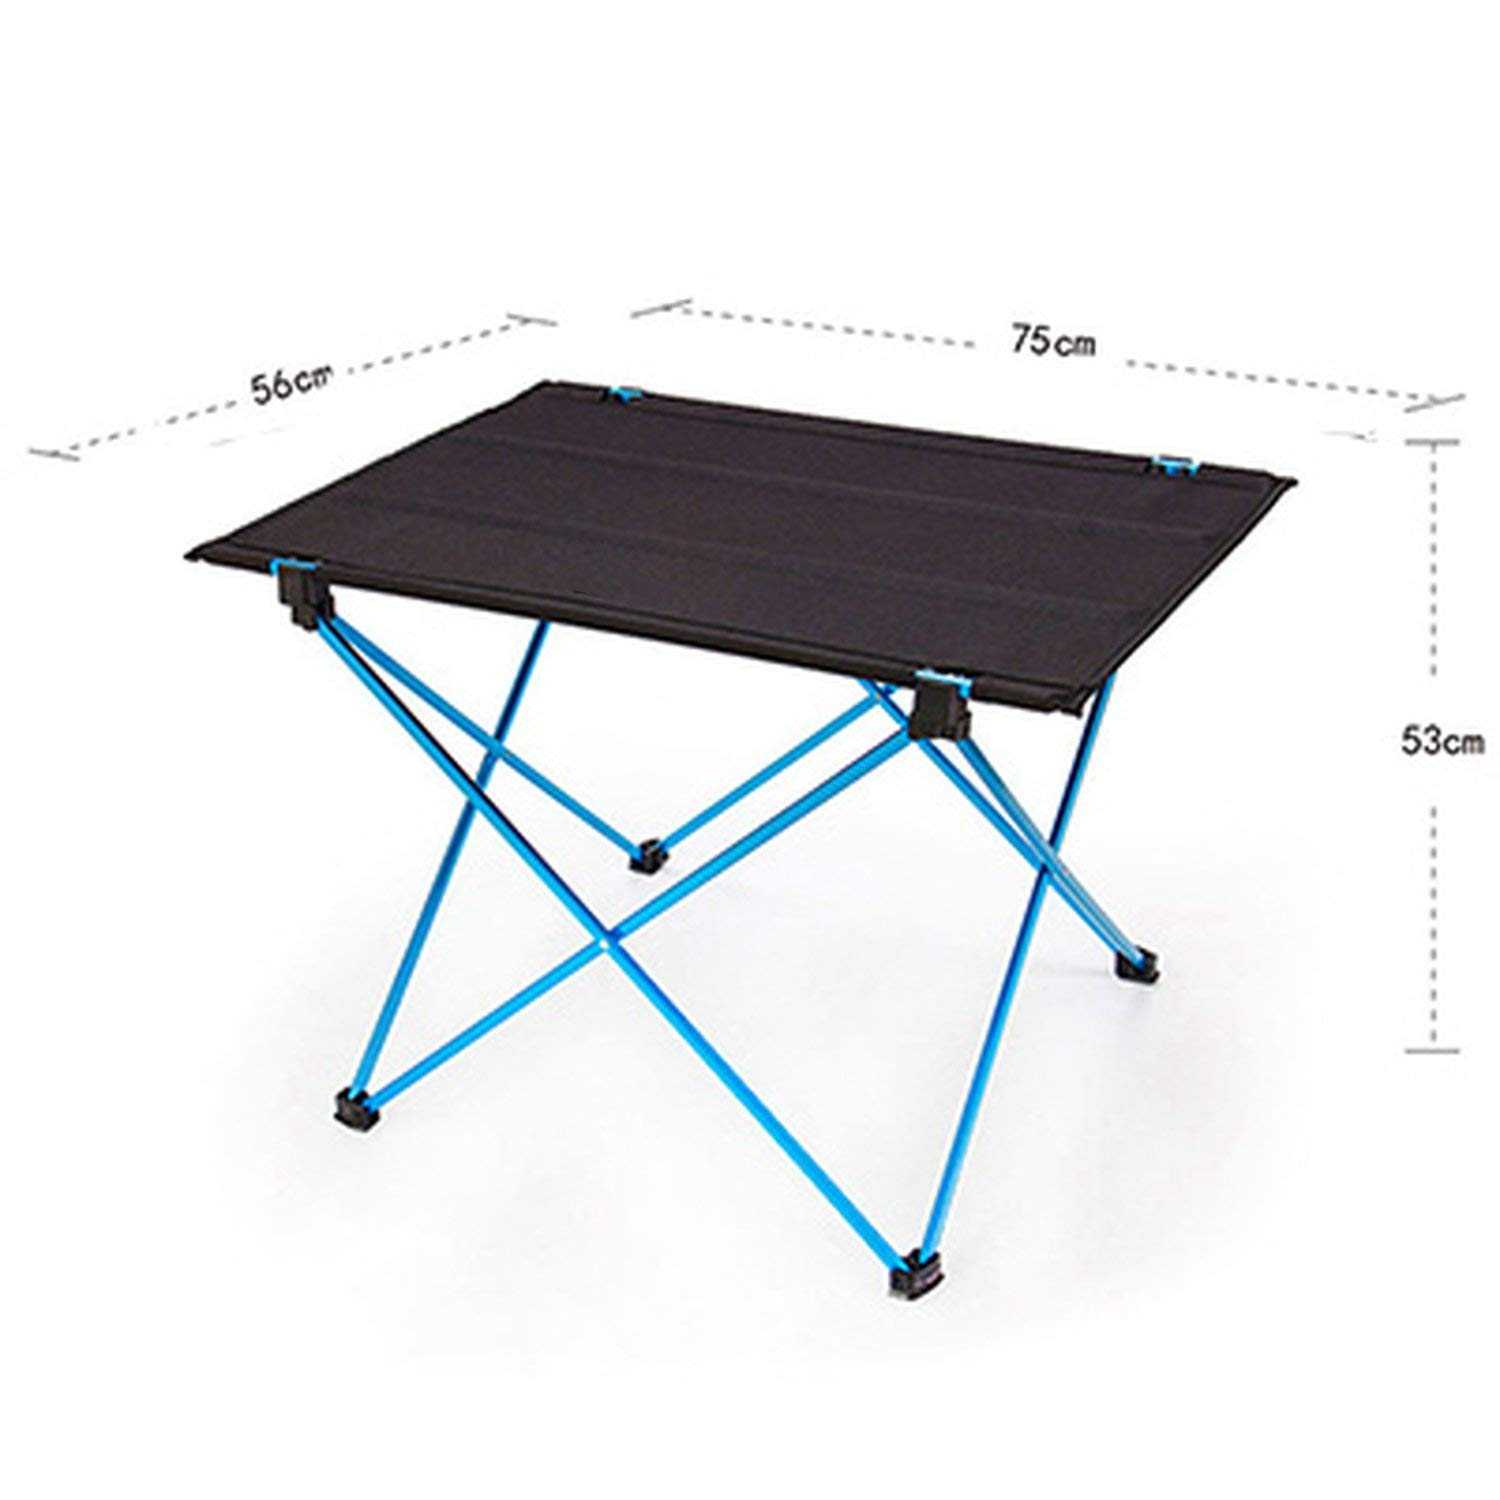 The command line is empty Portable Foldable Folding DIY Table Chair Desk Camping BBQ Hiking Traveling Outdoor Picnic UltraLight M L,SC23156x43x39BU